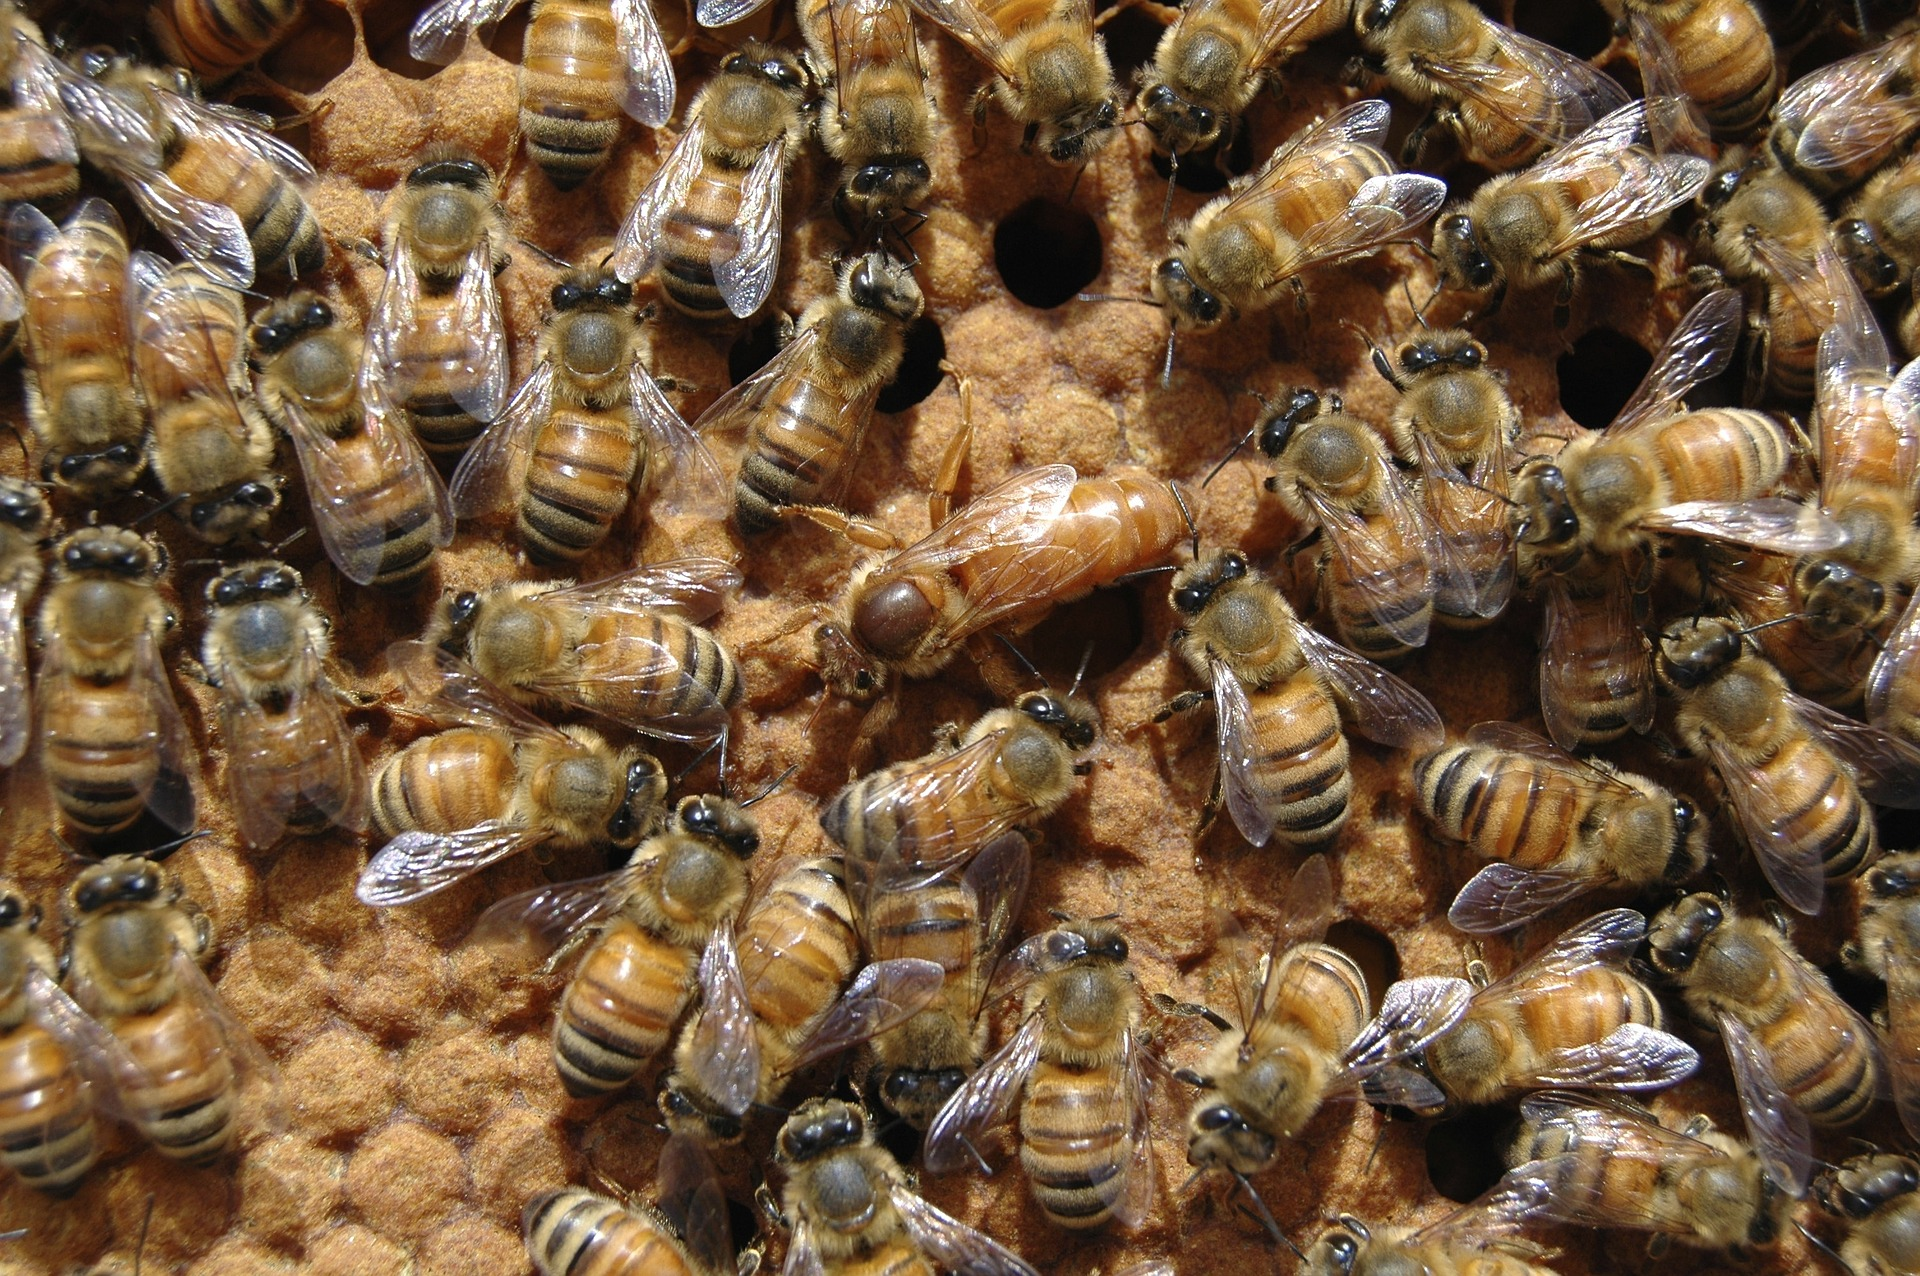 Queen bee surrounded by busy working bees